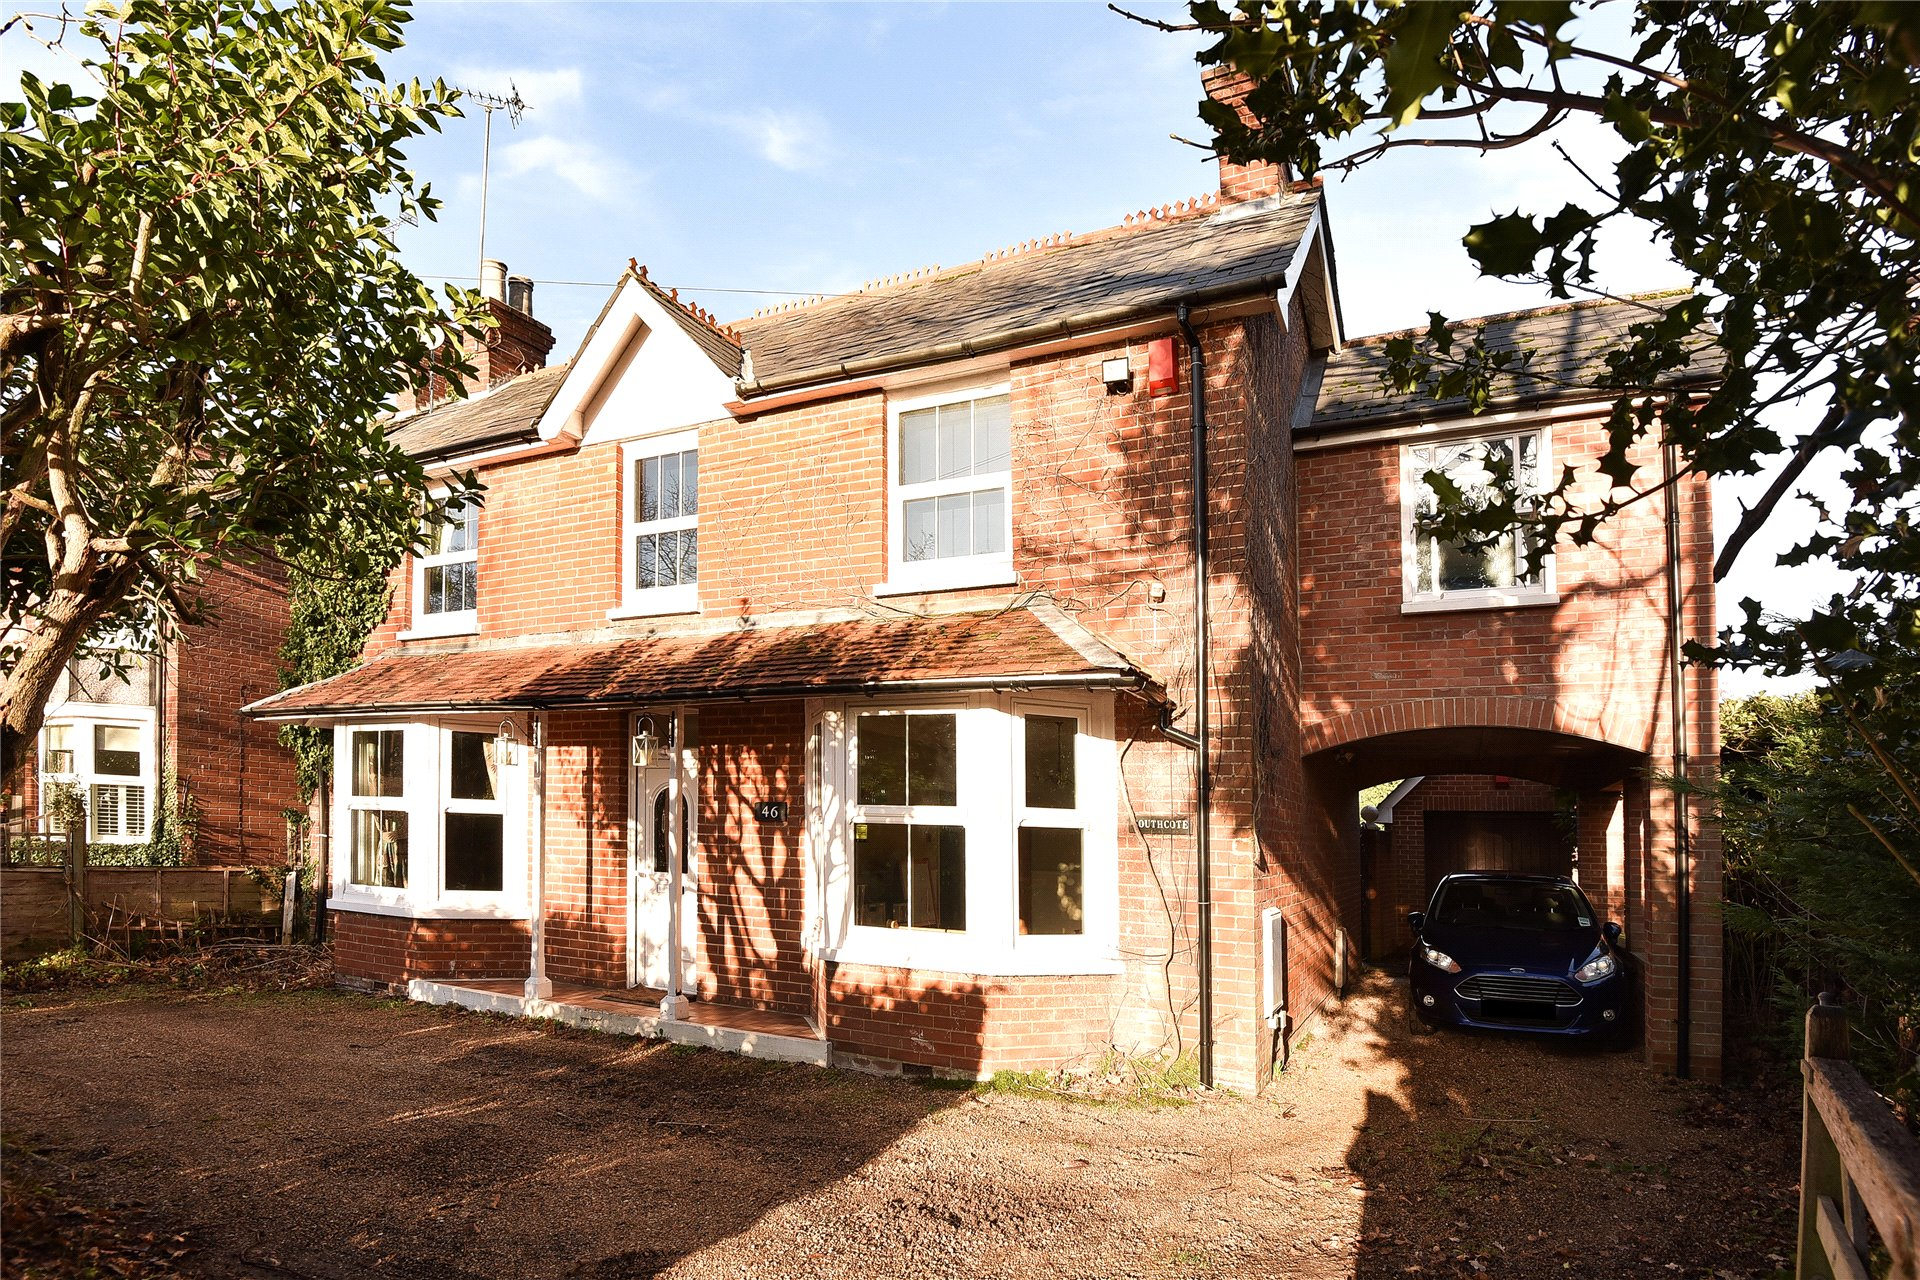 4 Bedrooms Detached House for sale in Reading Road, Blackwater, Camberley, GU17